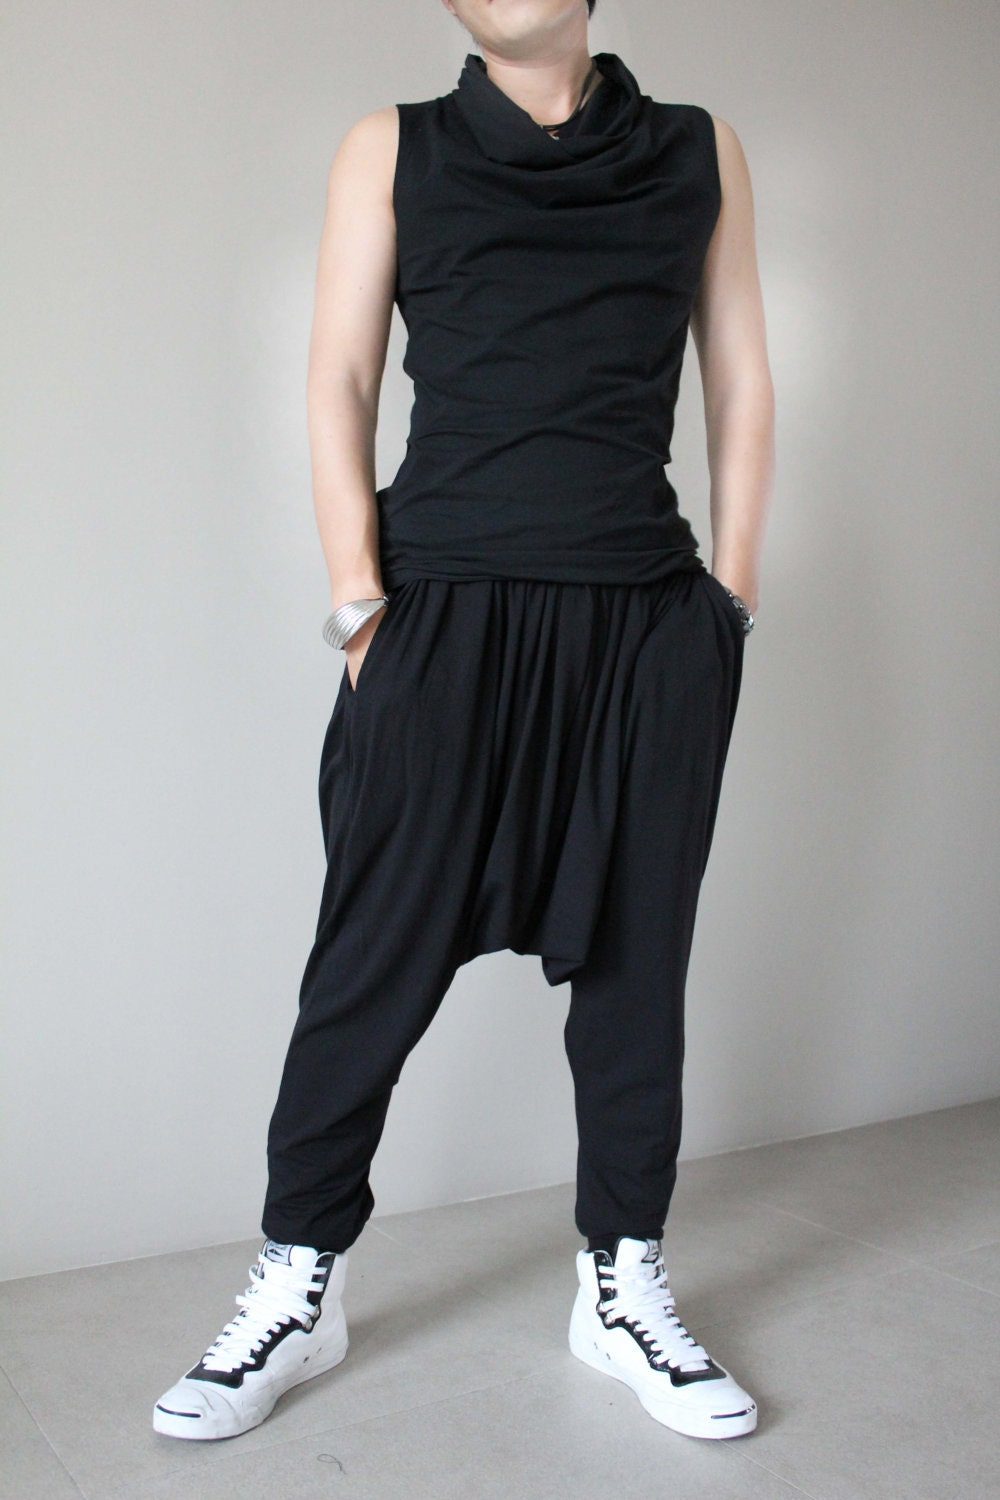 You searched for: mens harem pants! Etsy is the home to thousands of handmade, vintage, and one-of-a-kind products and gifts related to your search. No matter what you're looking for or where you are in the world, our global marketplace of sellers can help you find unique and affordable options.